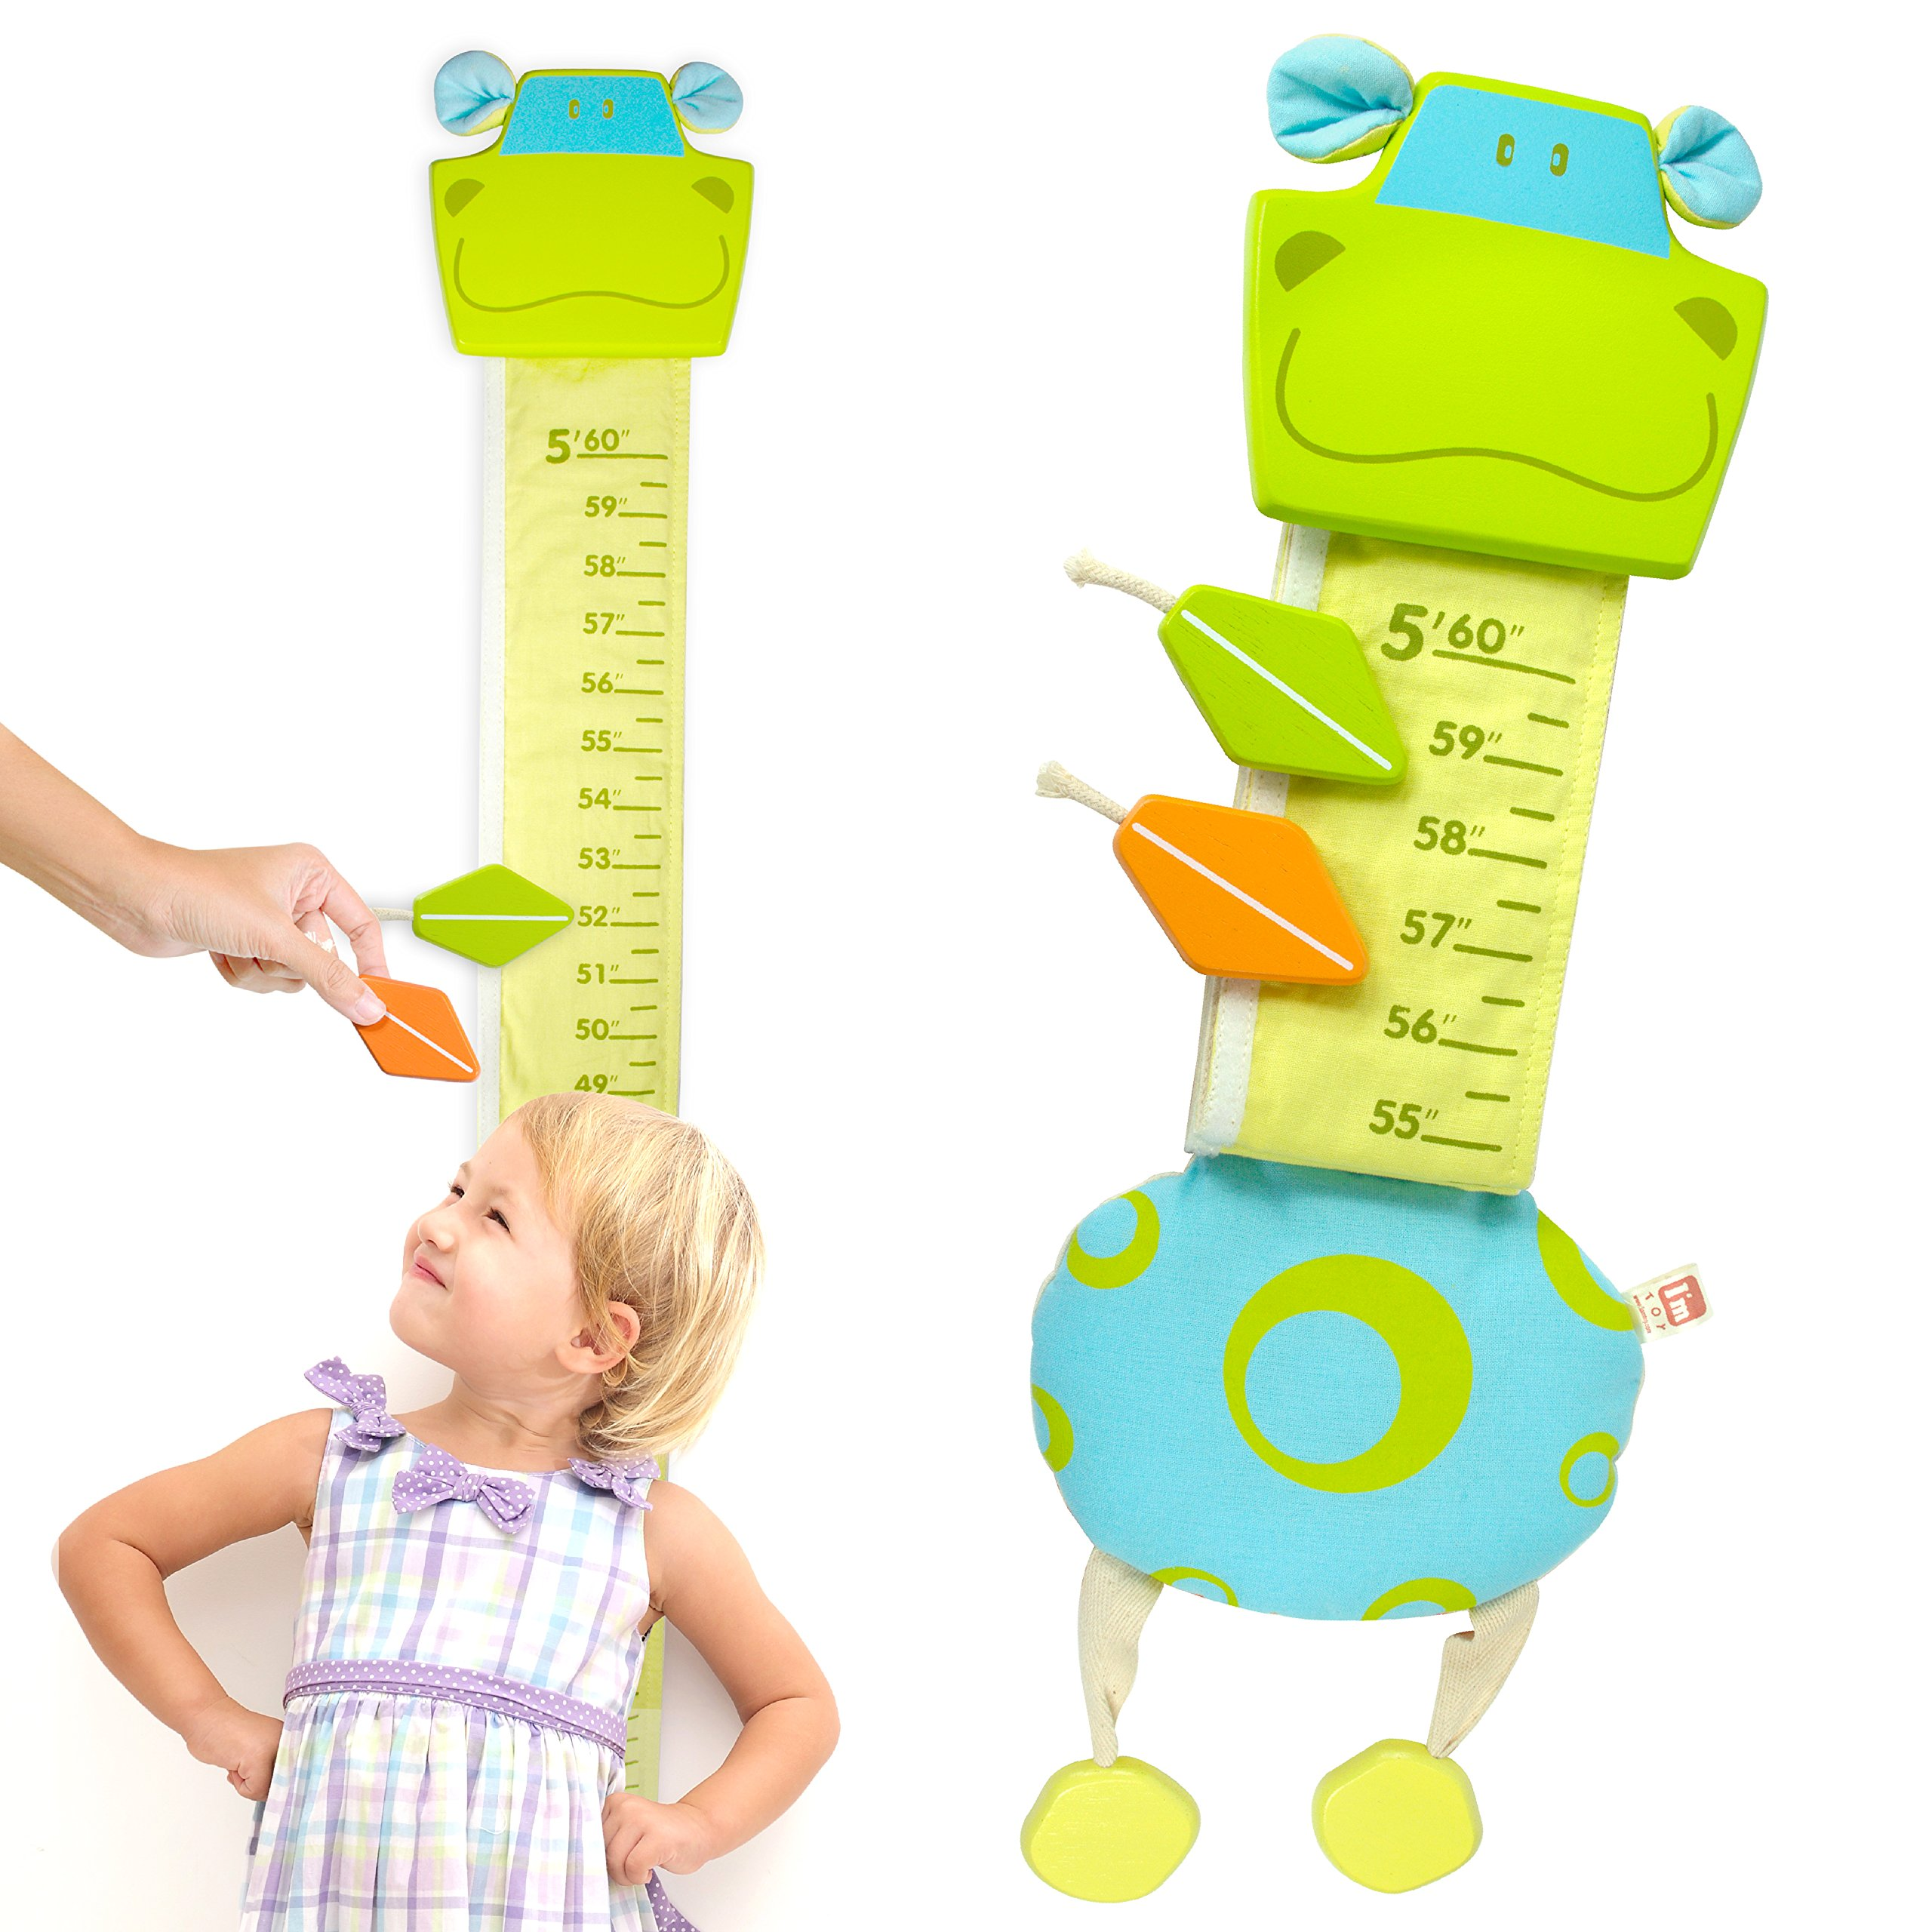 I'm Wood and Fabric Wall Growth Chart, Height Measurement, Scale, Ruler for Kids (Hippo)